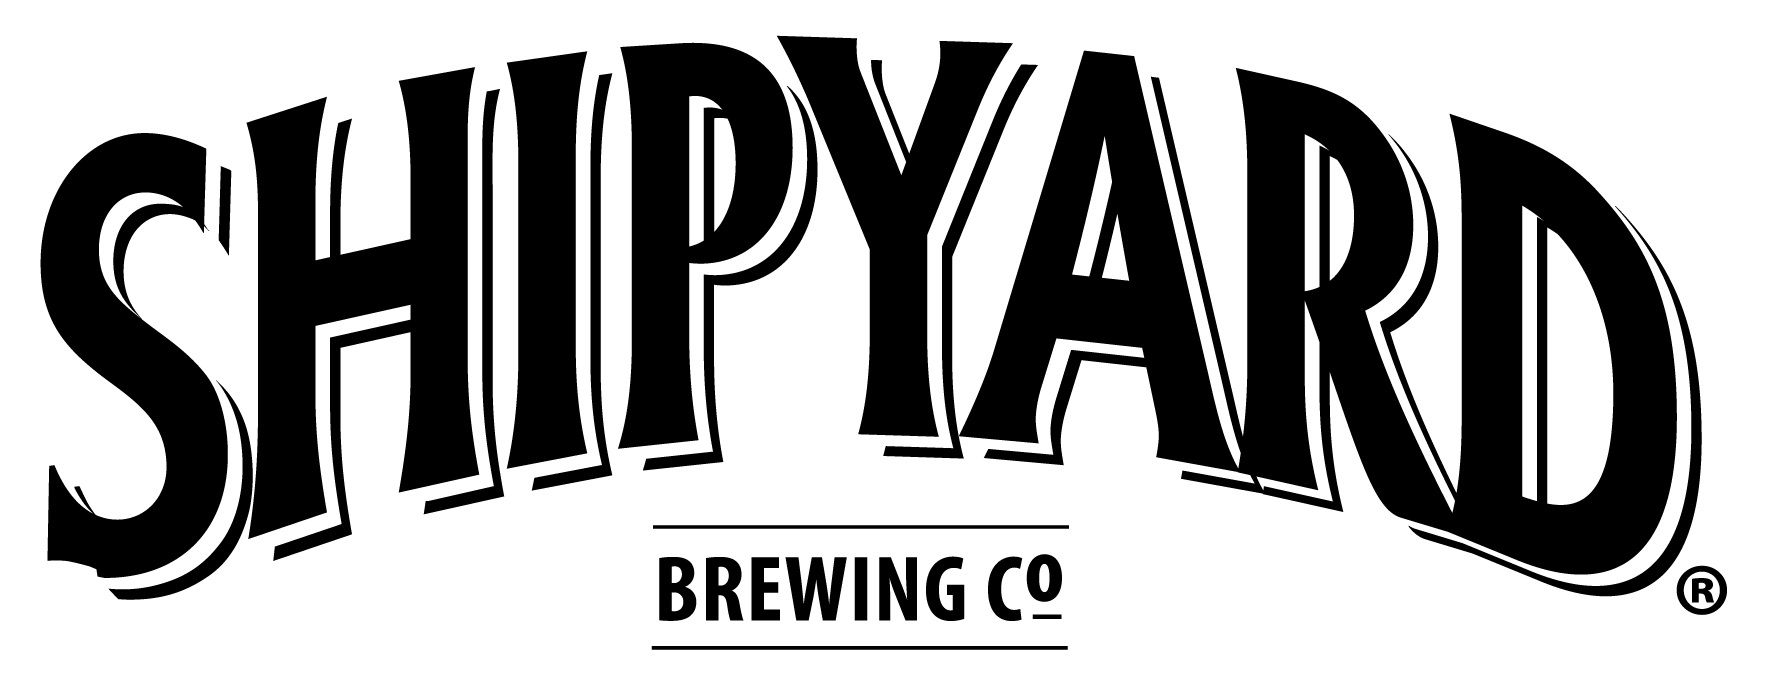 ShipyardBrewing_BlackLogo2.jpg